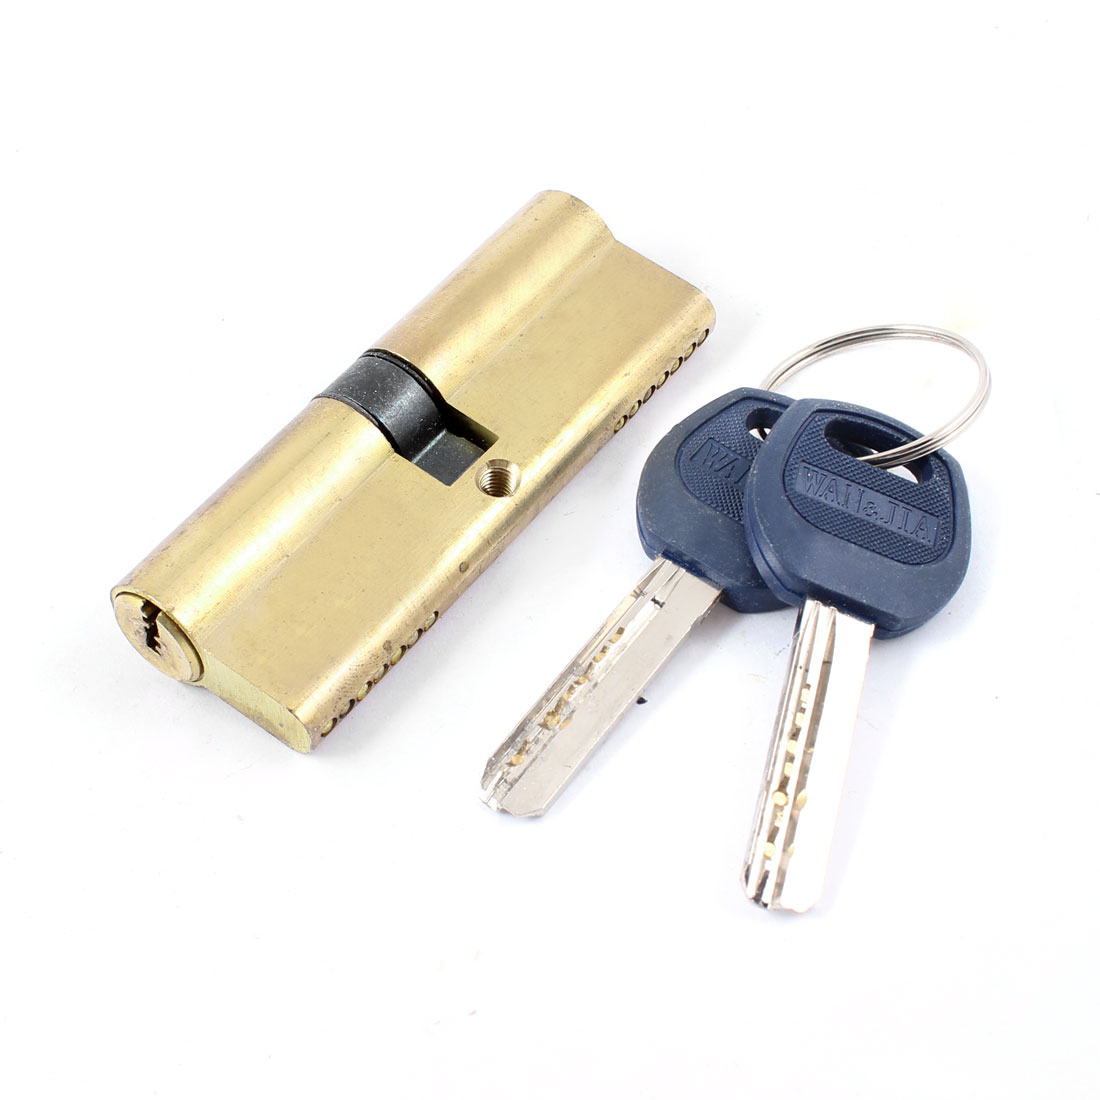 UXCELL Home Gold Tone Metal Safety Home Door Lock Cylinder W 8 Keys<br><br>Aliexpress